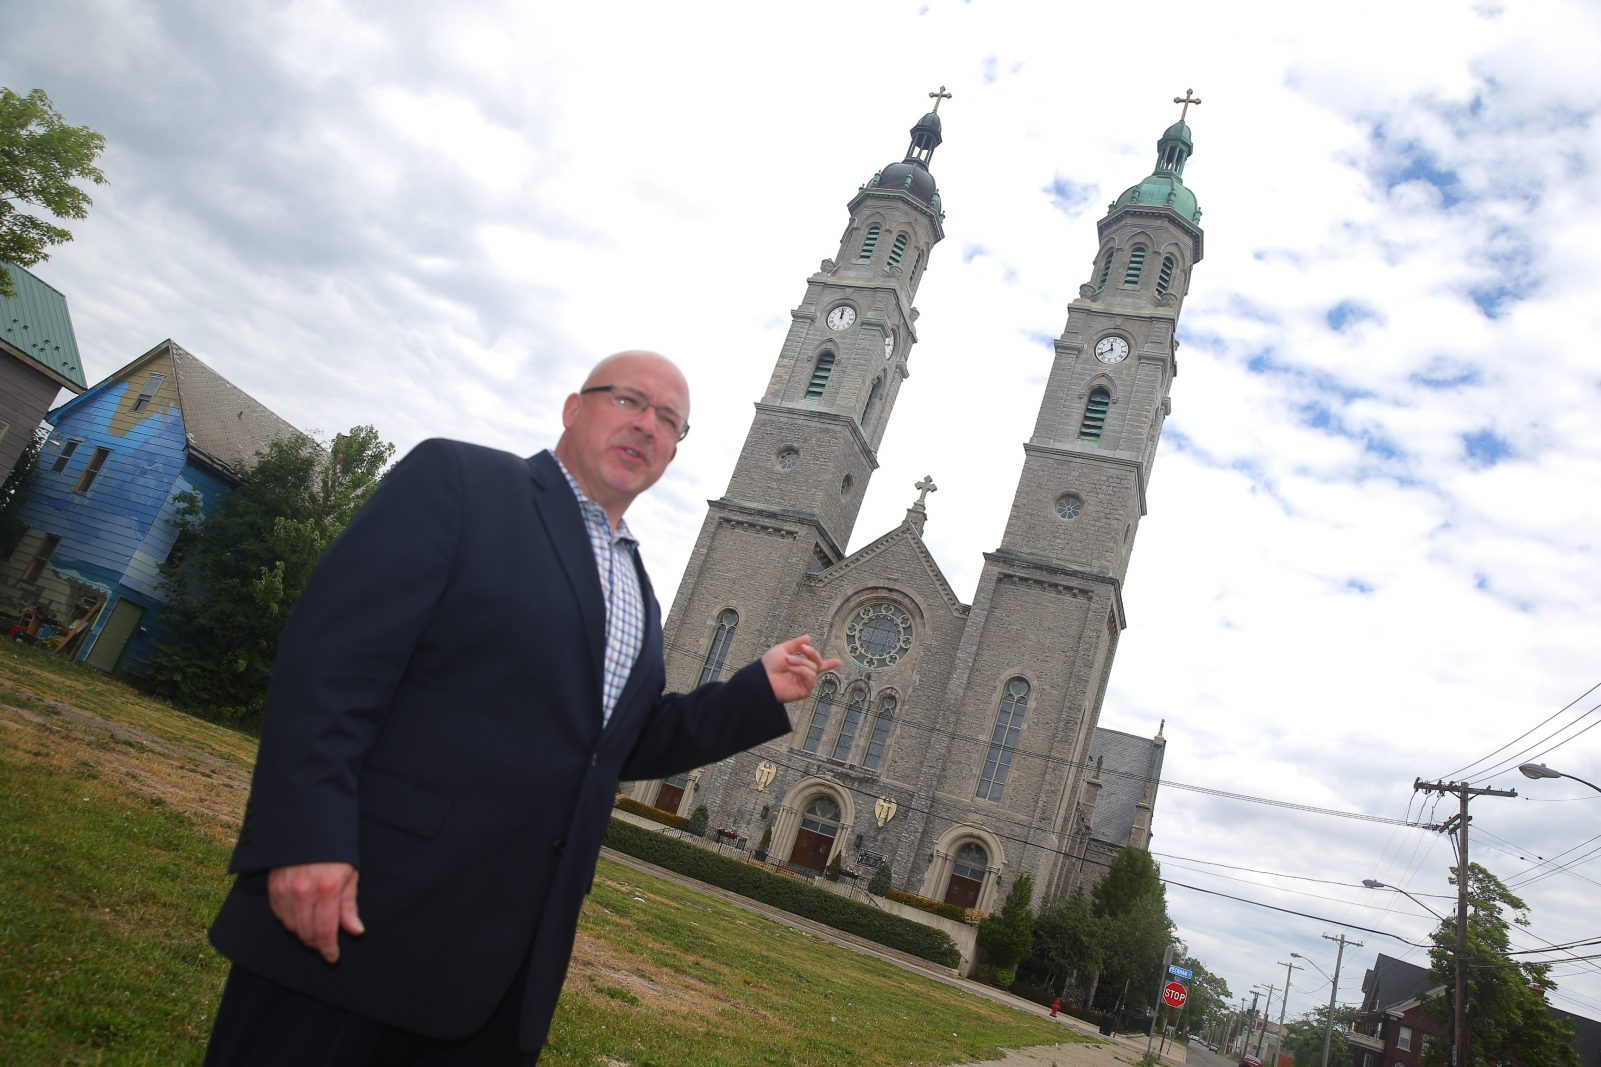 James L. Lawicki, president of the Polish American Congress, came up with the idea for the Polonia Trail. He's seen here in front of St. Stanislaus Church. (John Hickey/Buffalo News)